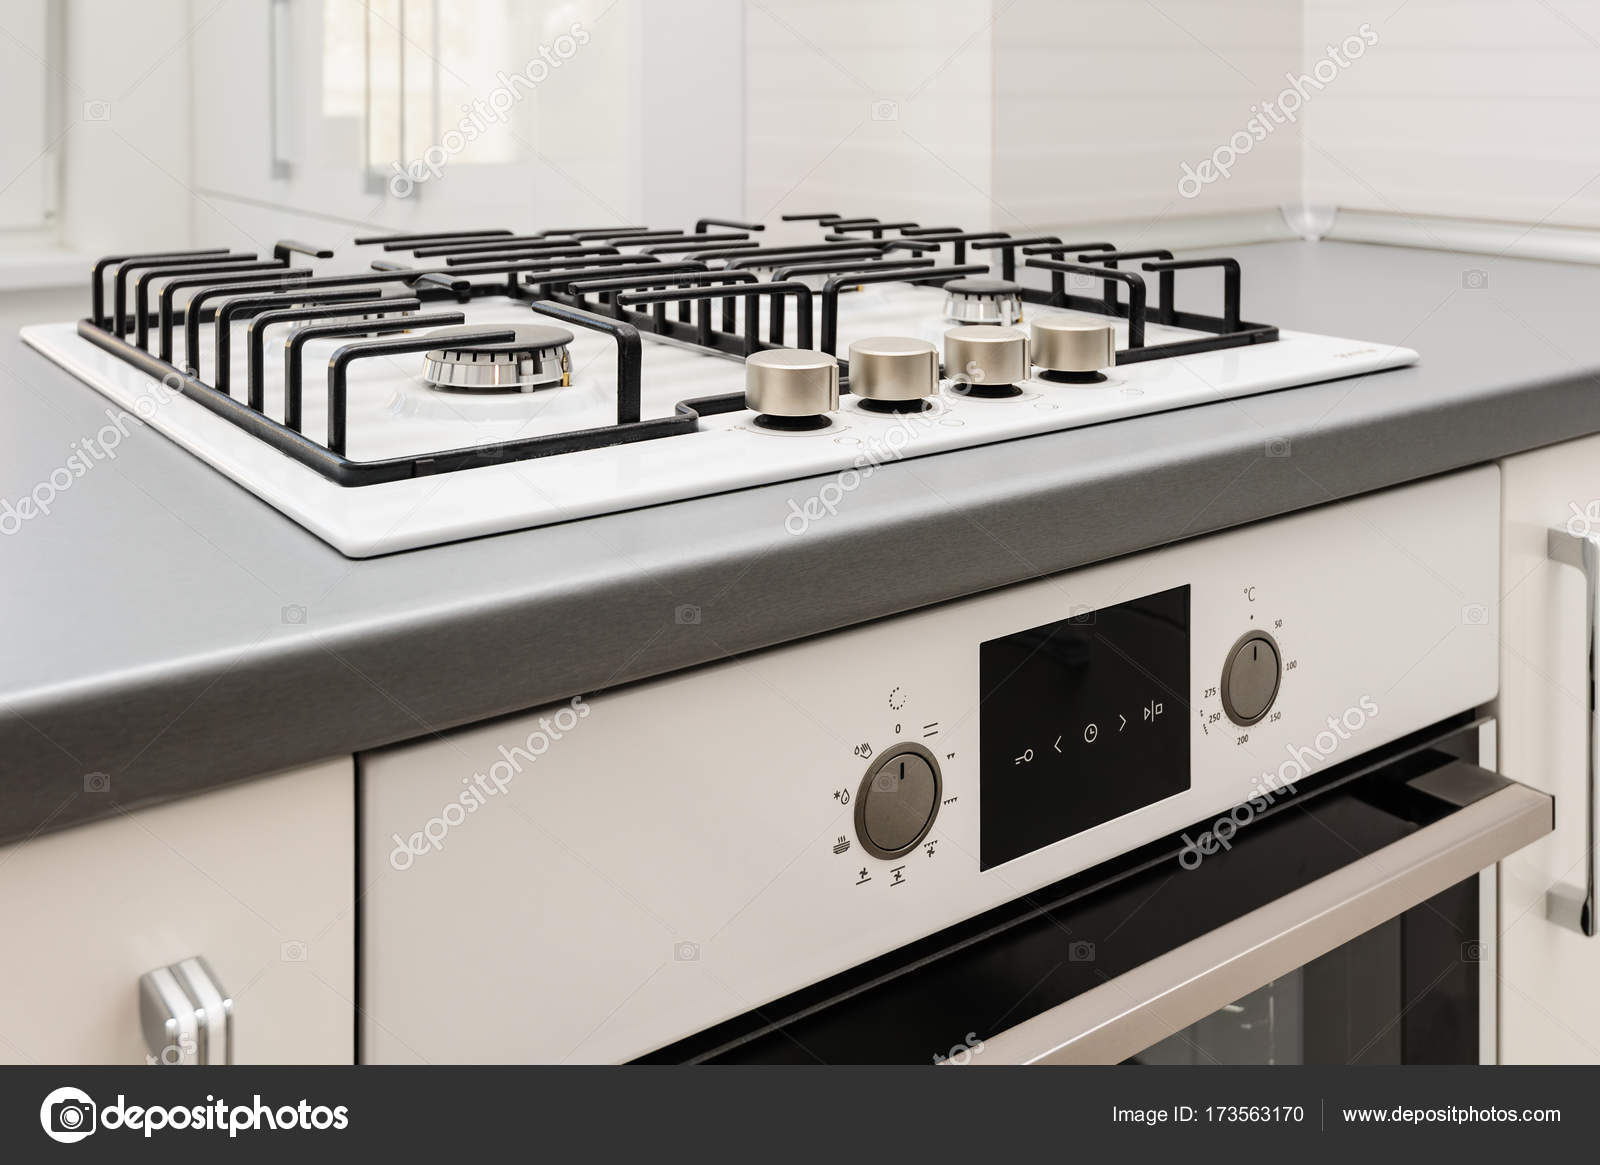 How to embed a gas stove in the countertop: step by step instructions 95